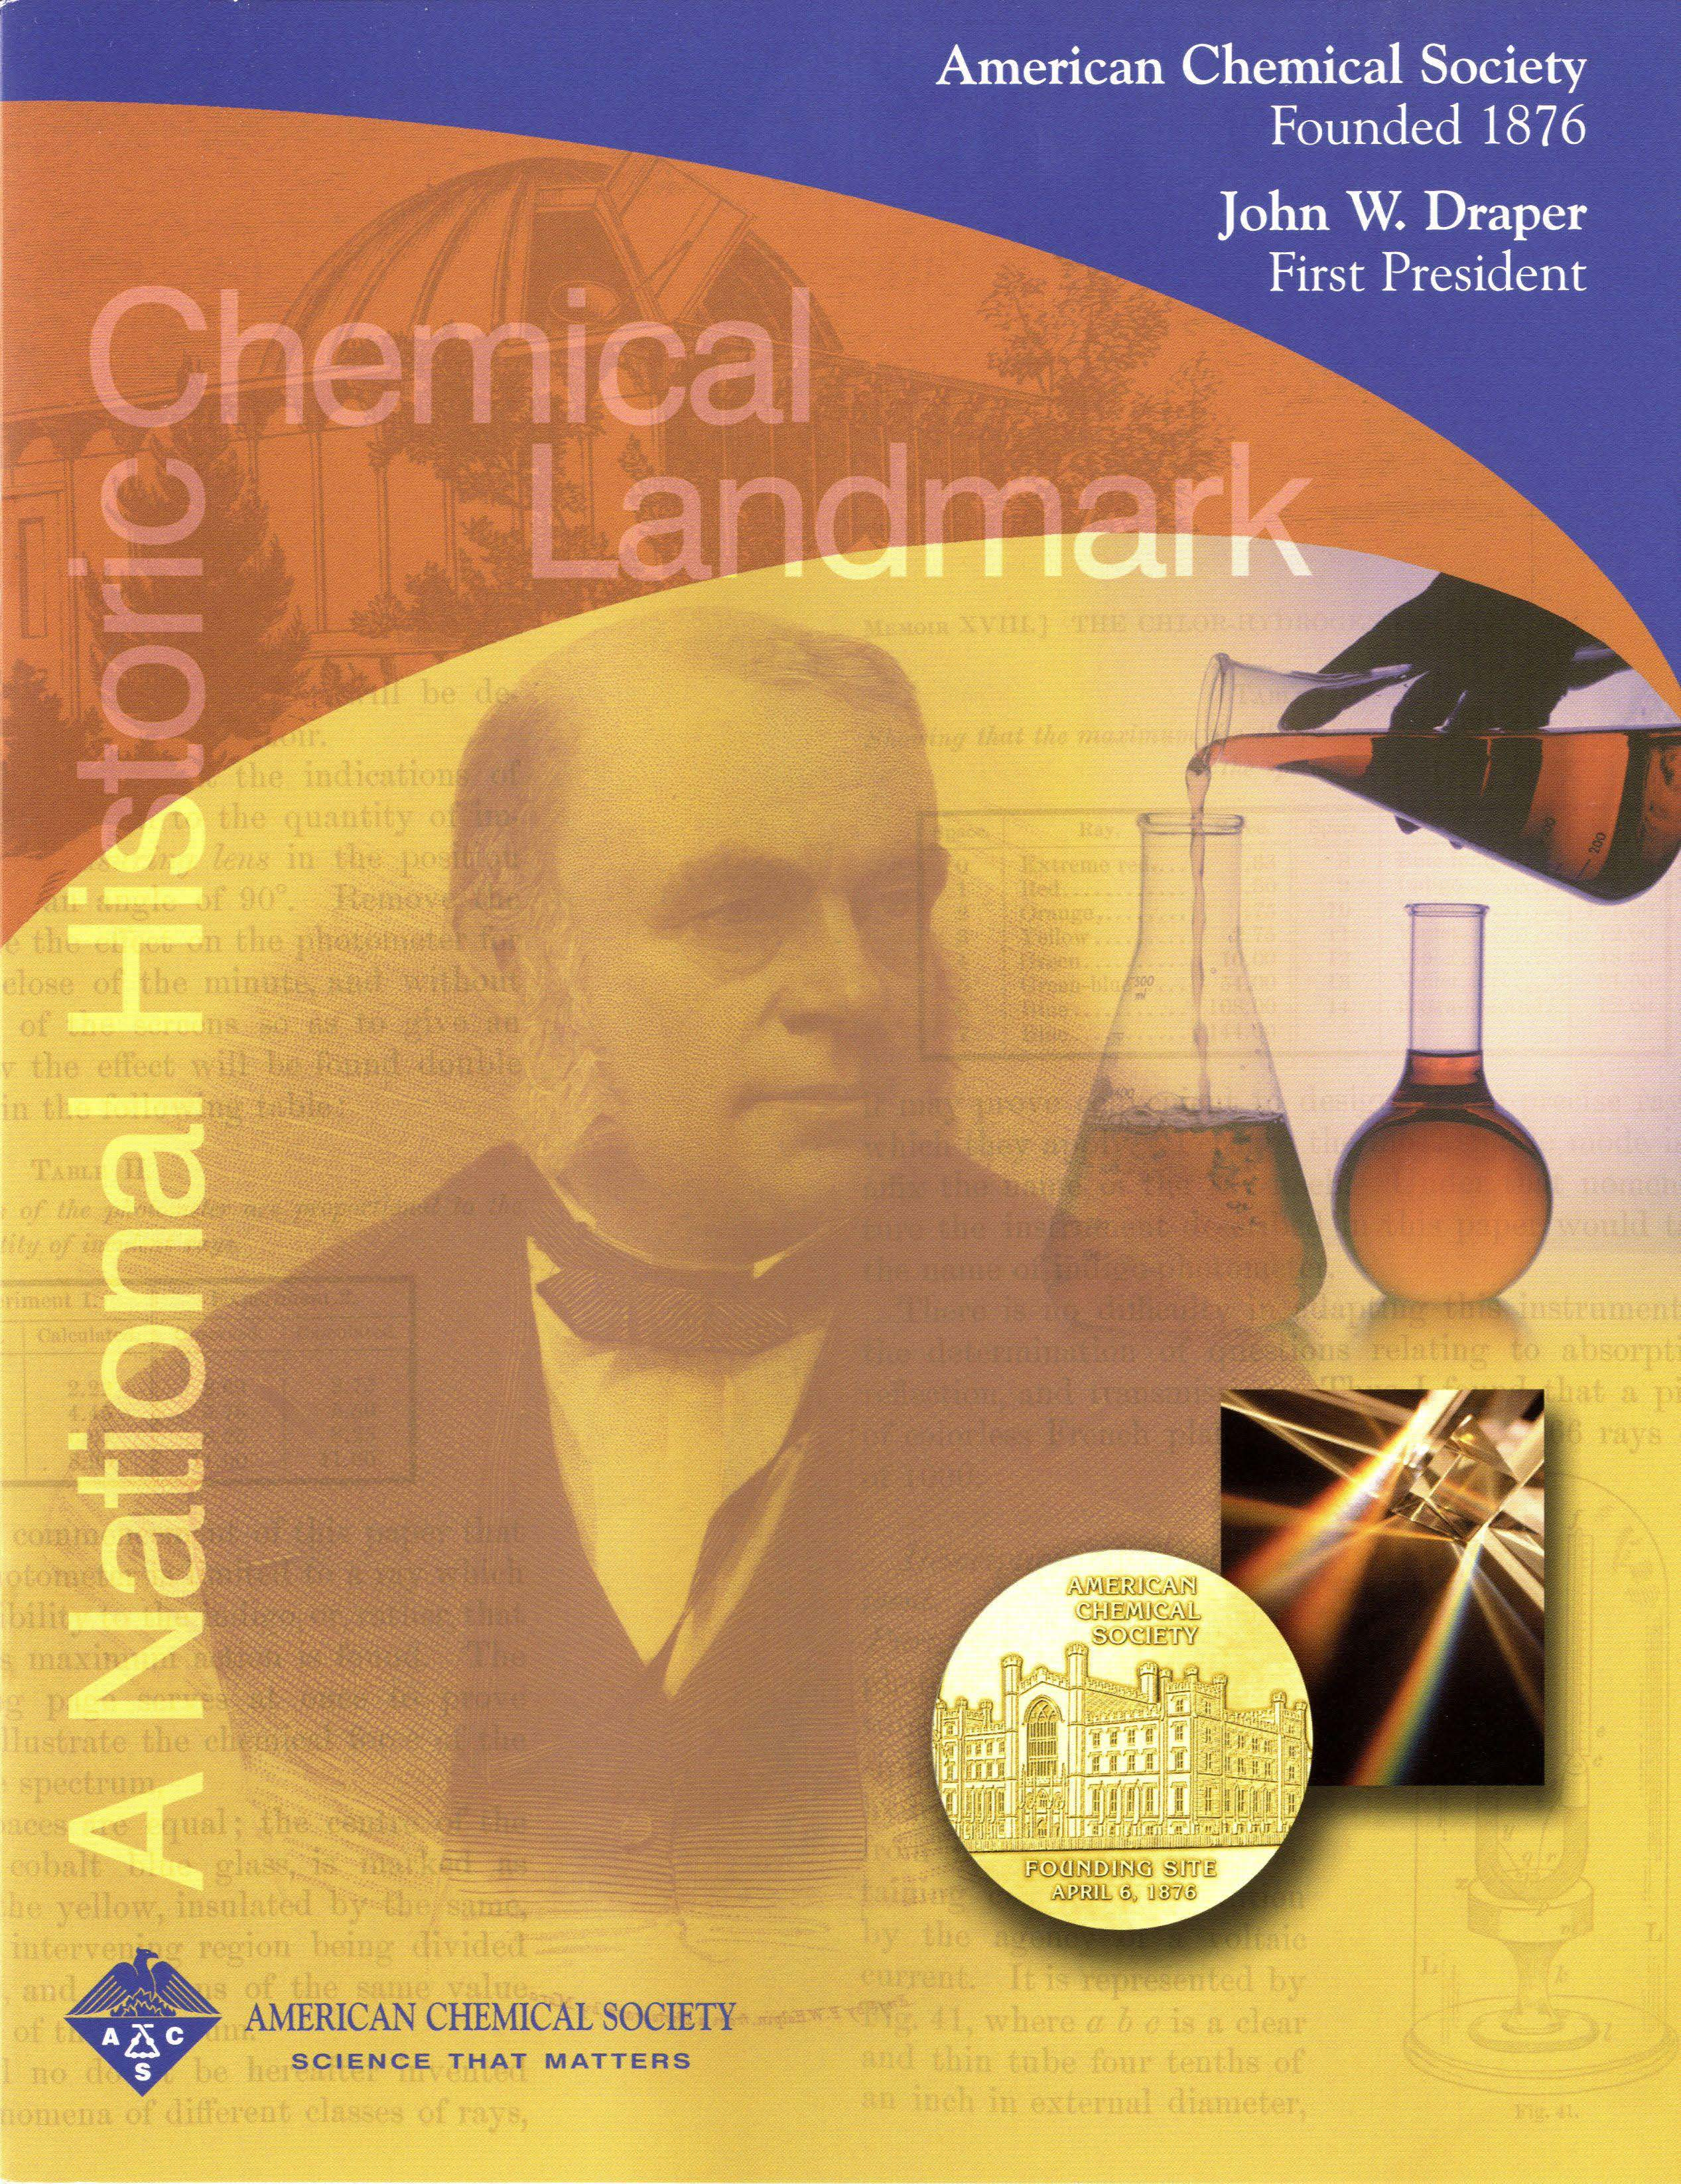 John w draper and the founding of the american chemical society american chemical society founded 1876 john w draper first president commemorative booklet urtaz Choice Image